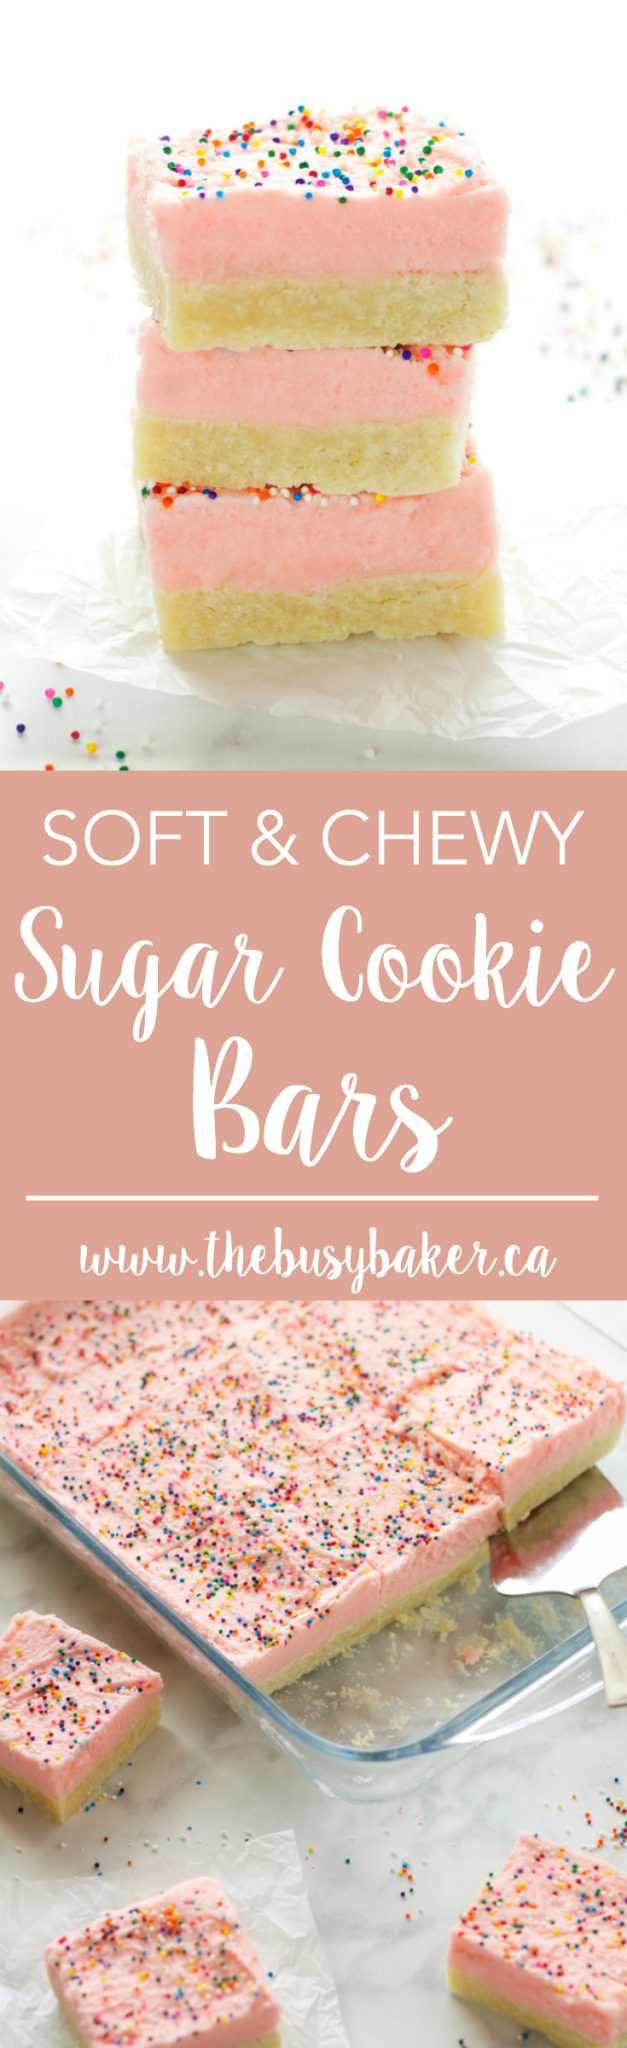 These Soft and Chewy Sugar Cookie Bars are the perfect kid-friendly dessert that the whole family will love! Recipe from thebusybaker.ca! via @busybakerblog